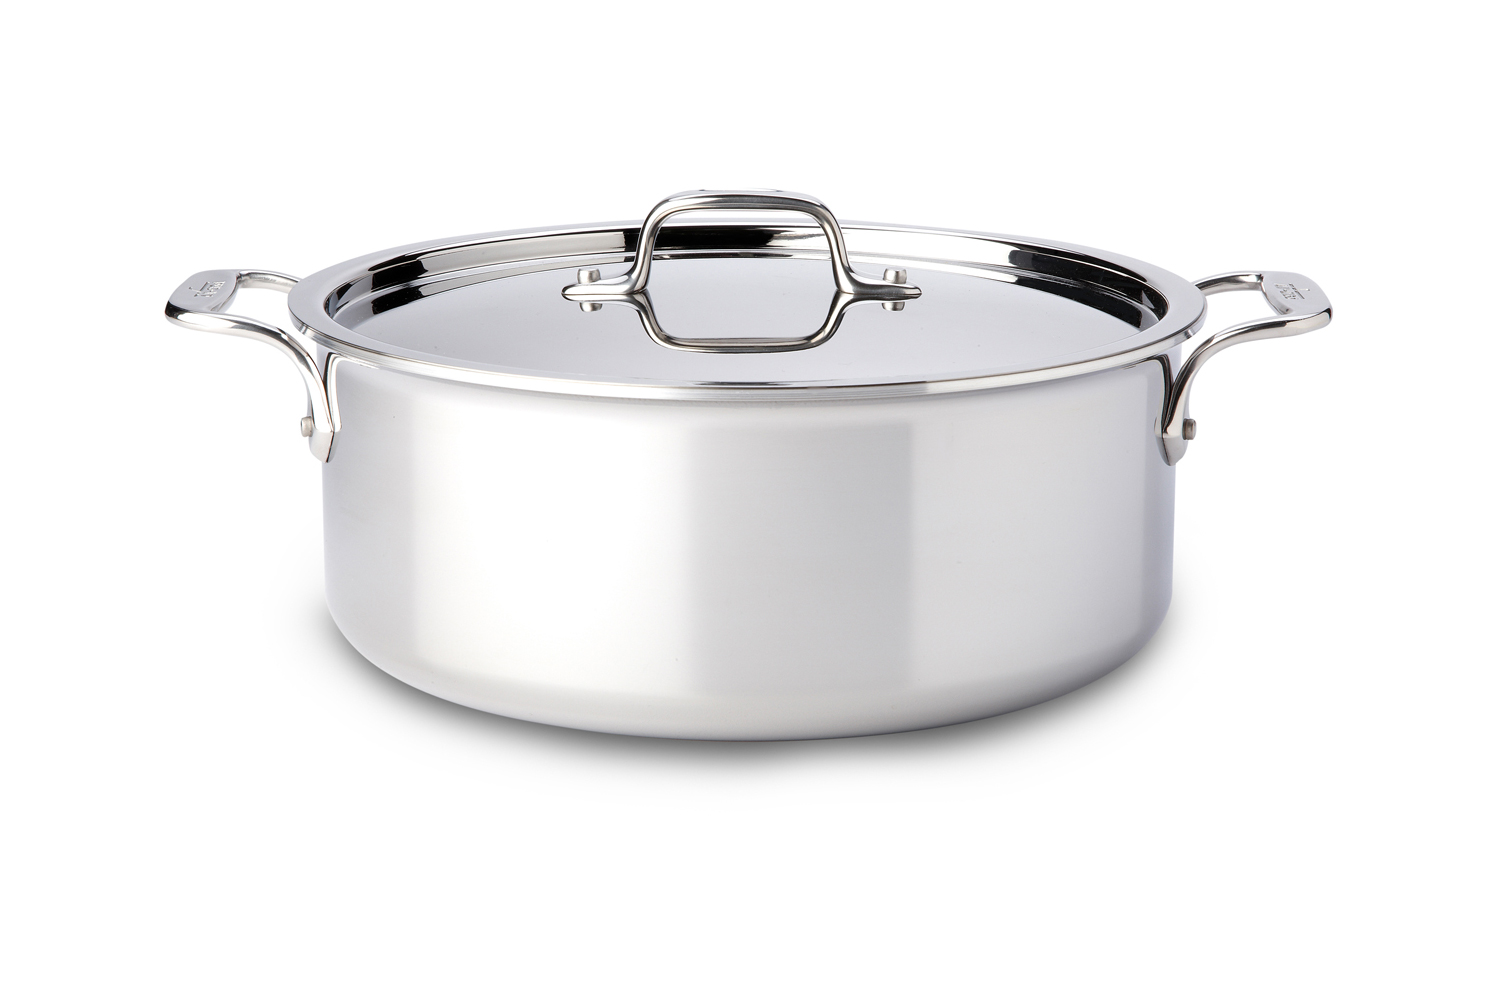 All-Clad d3 Tri-Ply Stainless Steel 6 qt. Stock Pot w/Lid